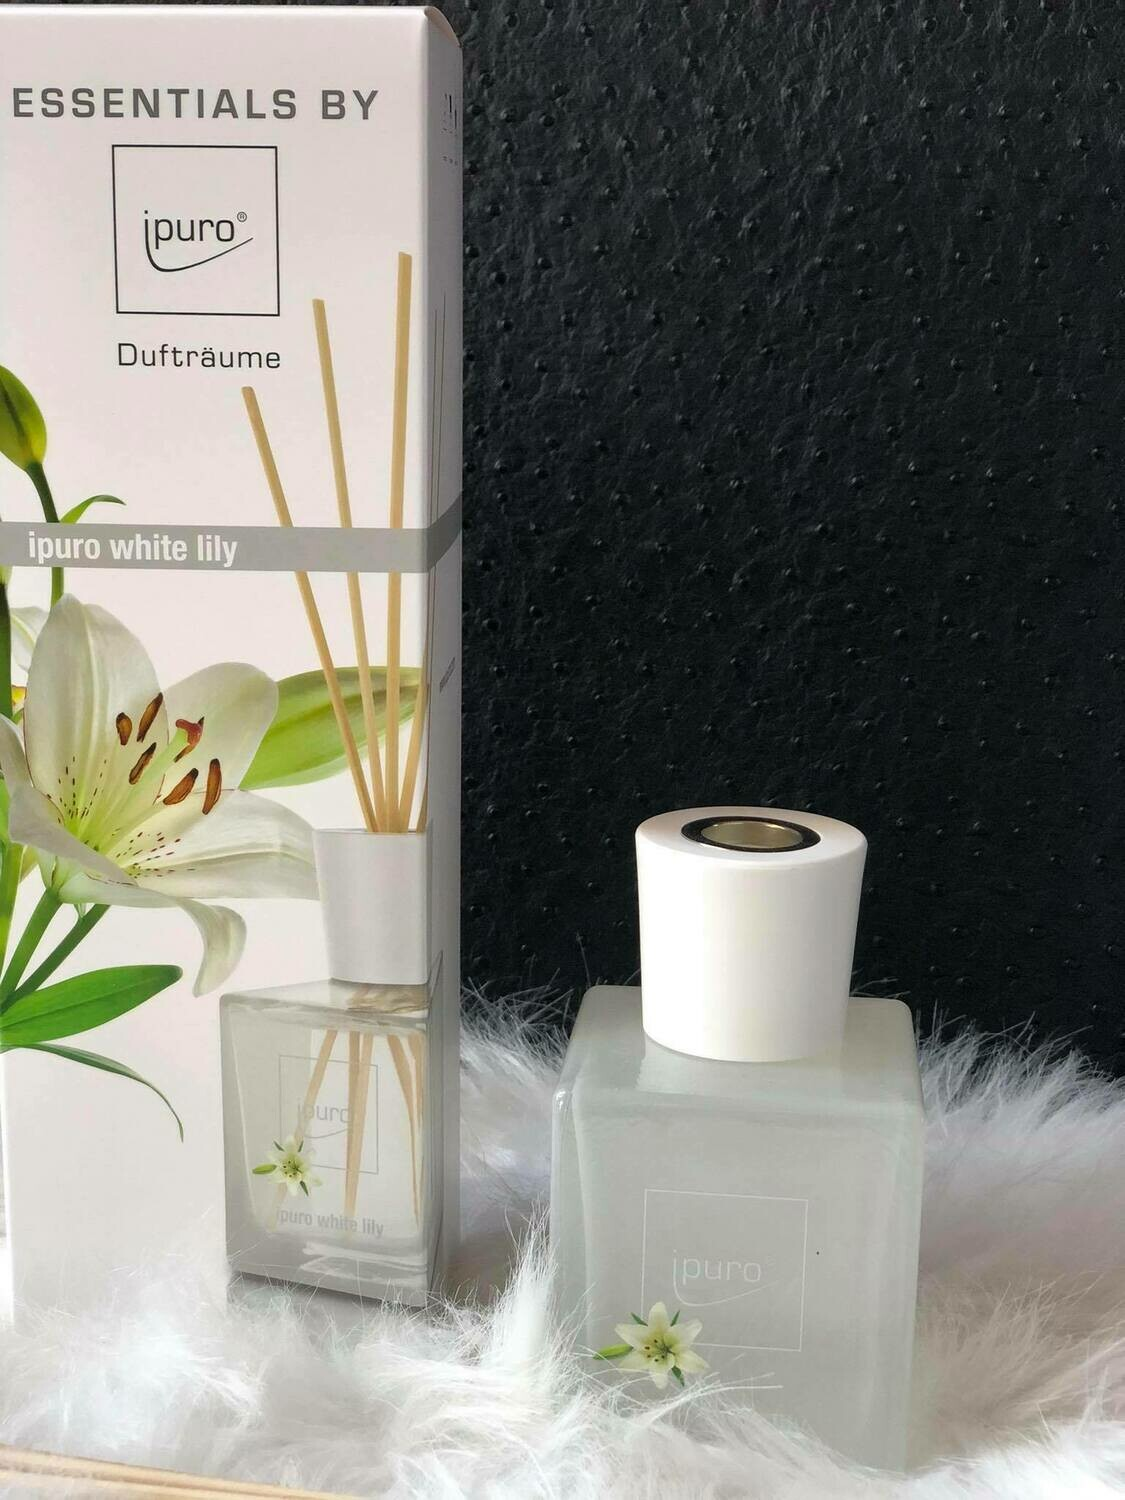 Ipruo - White lily 200ml